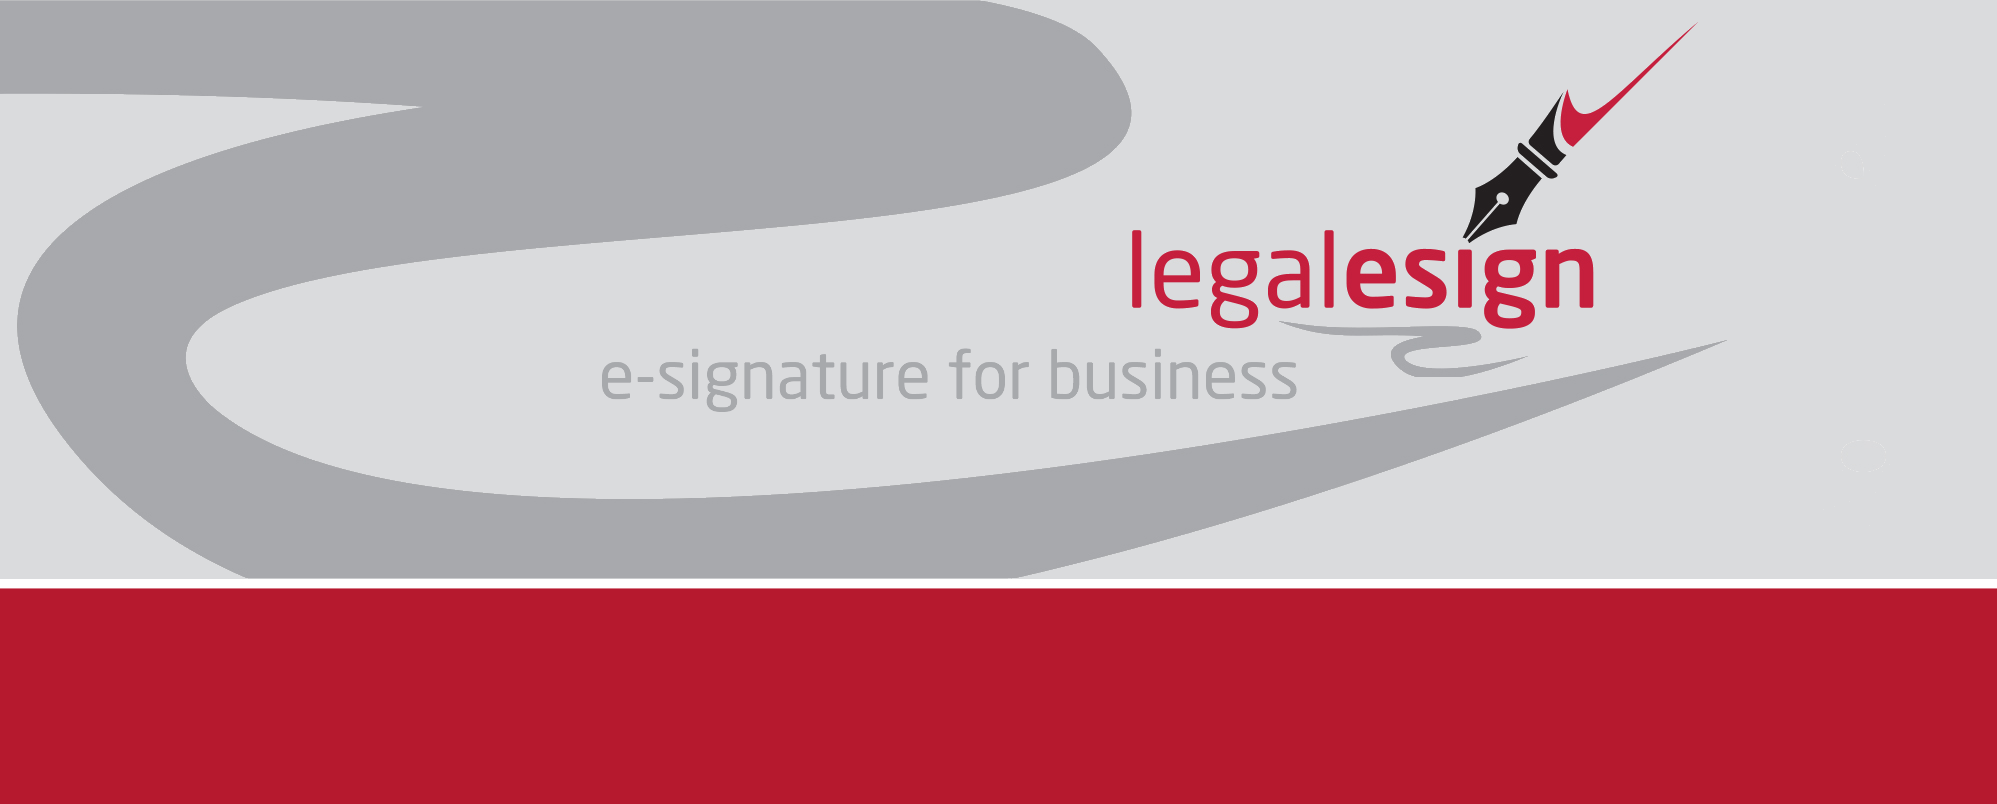 What are the benefits of e-signature for your business?